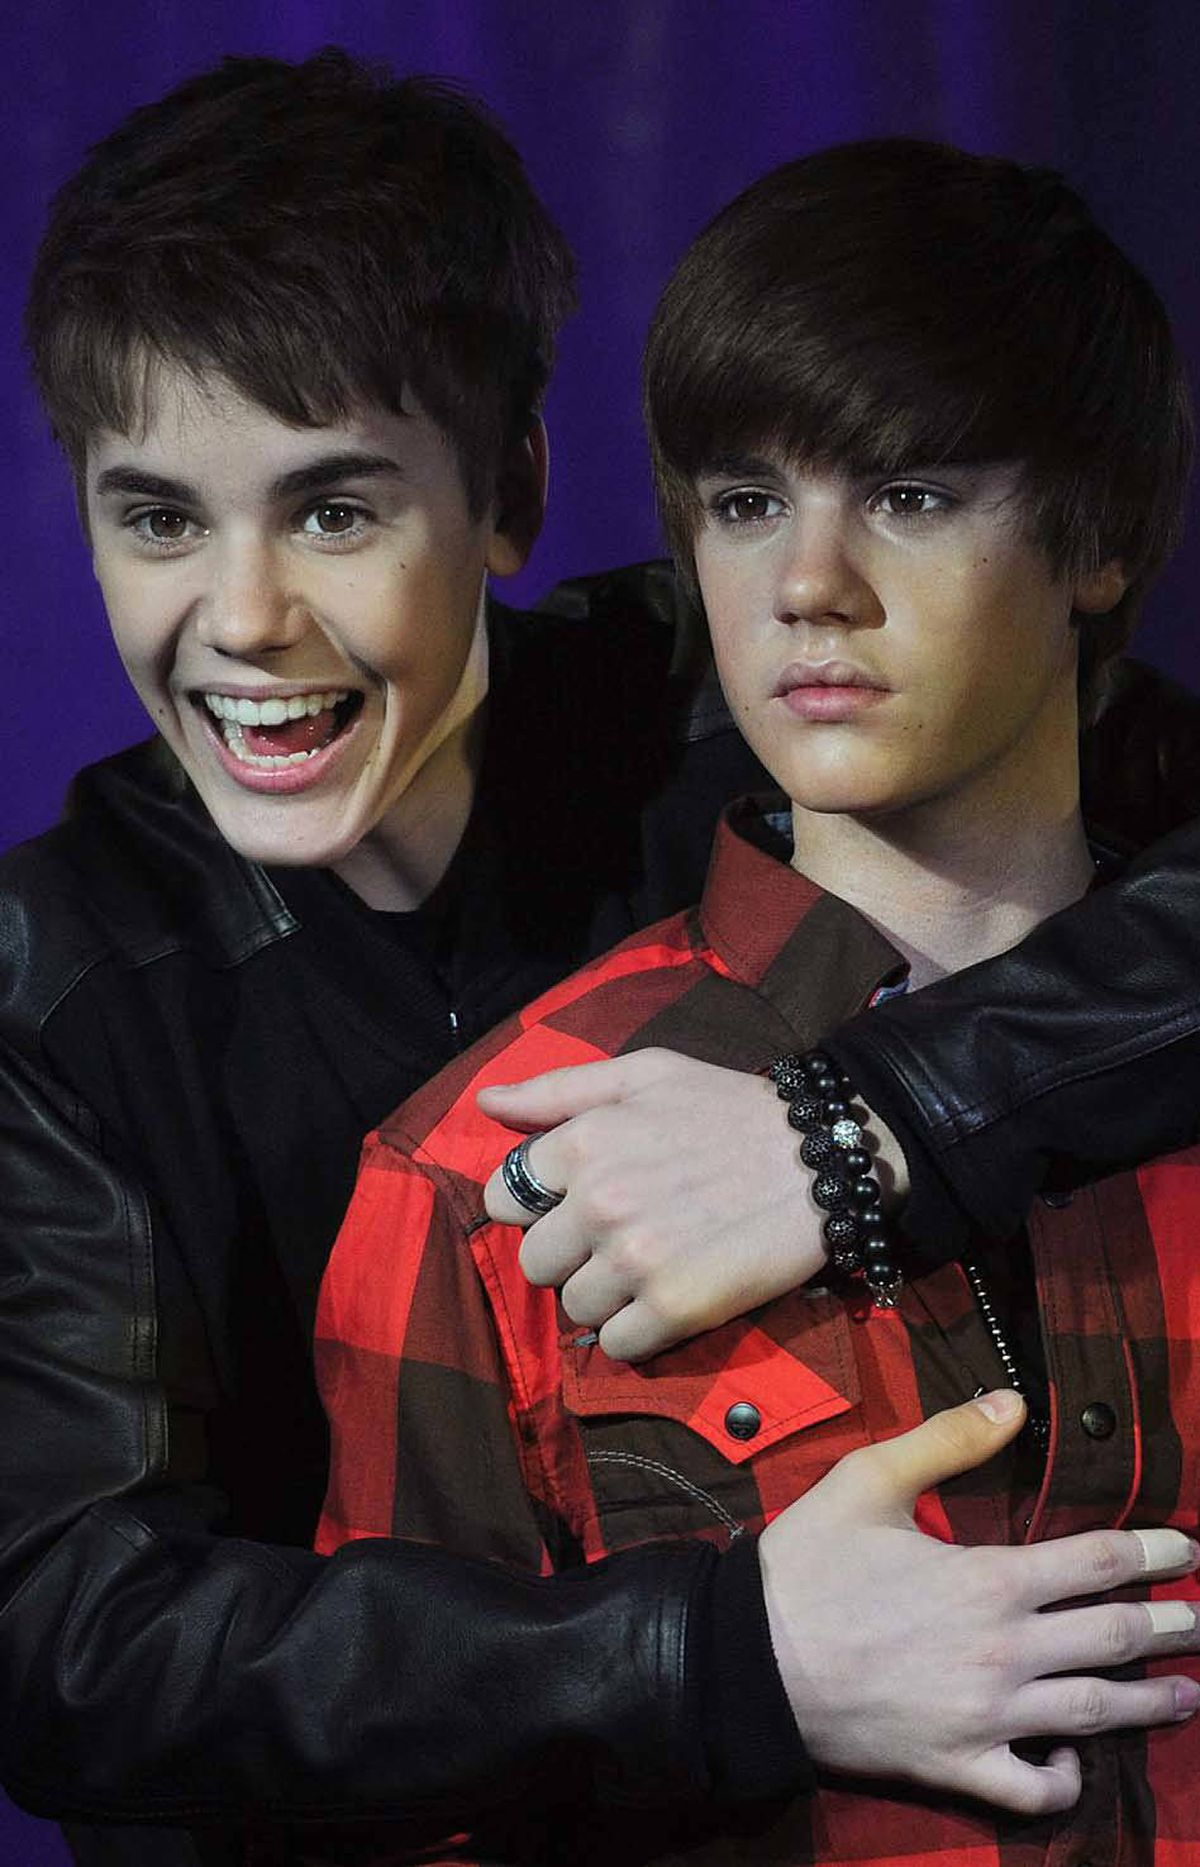 The very next day -- THE VERY NEXT DAY! -- Justin Bieber was in London for the unveiling of his likeness at Madame Tussauds decidely passé wax museum.